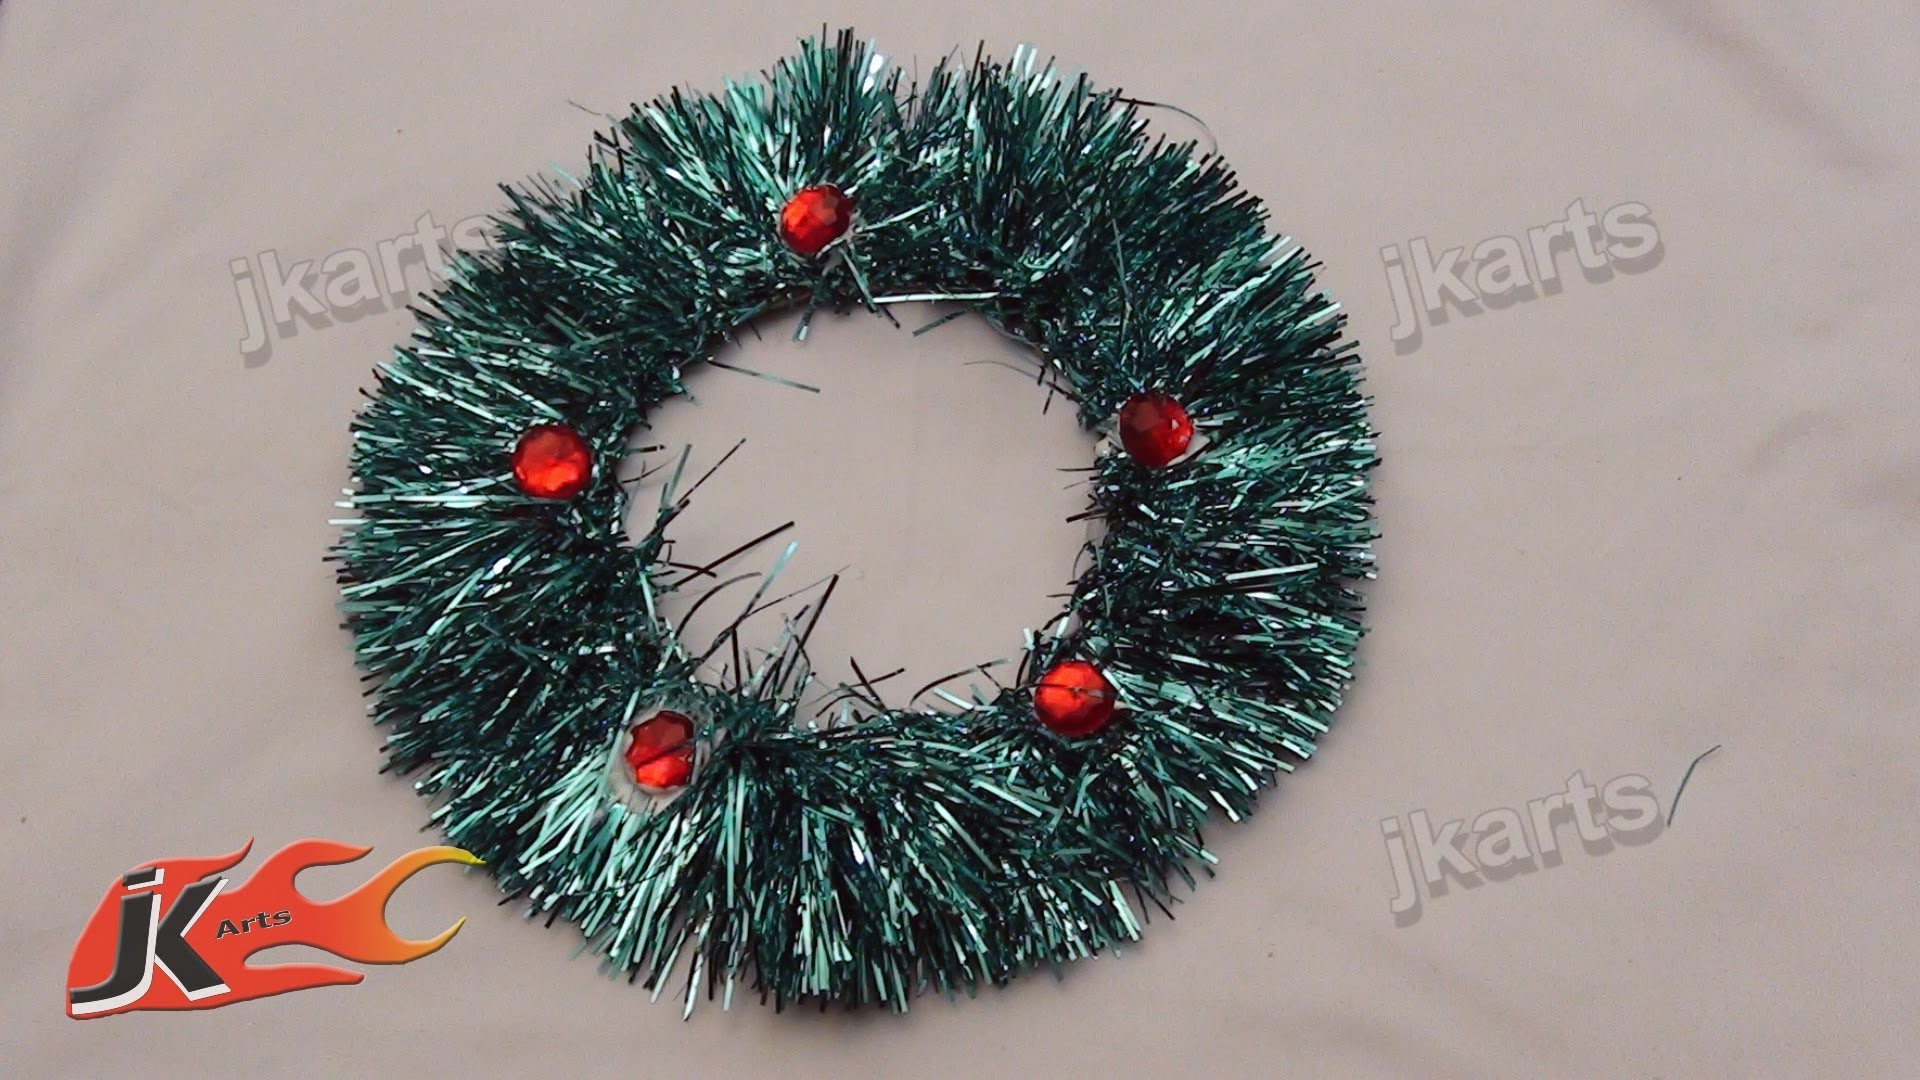 DIY How to make Tinsel wreath christmas ornament - JK Arts 105